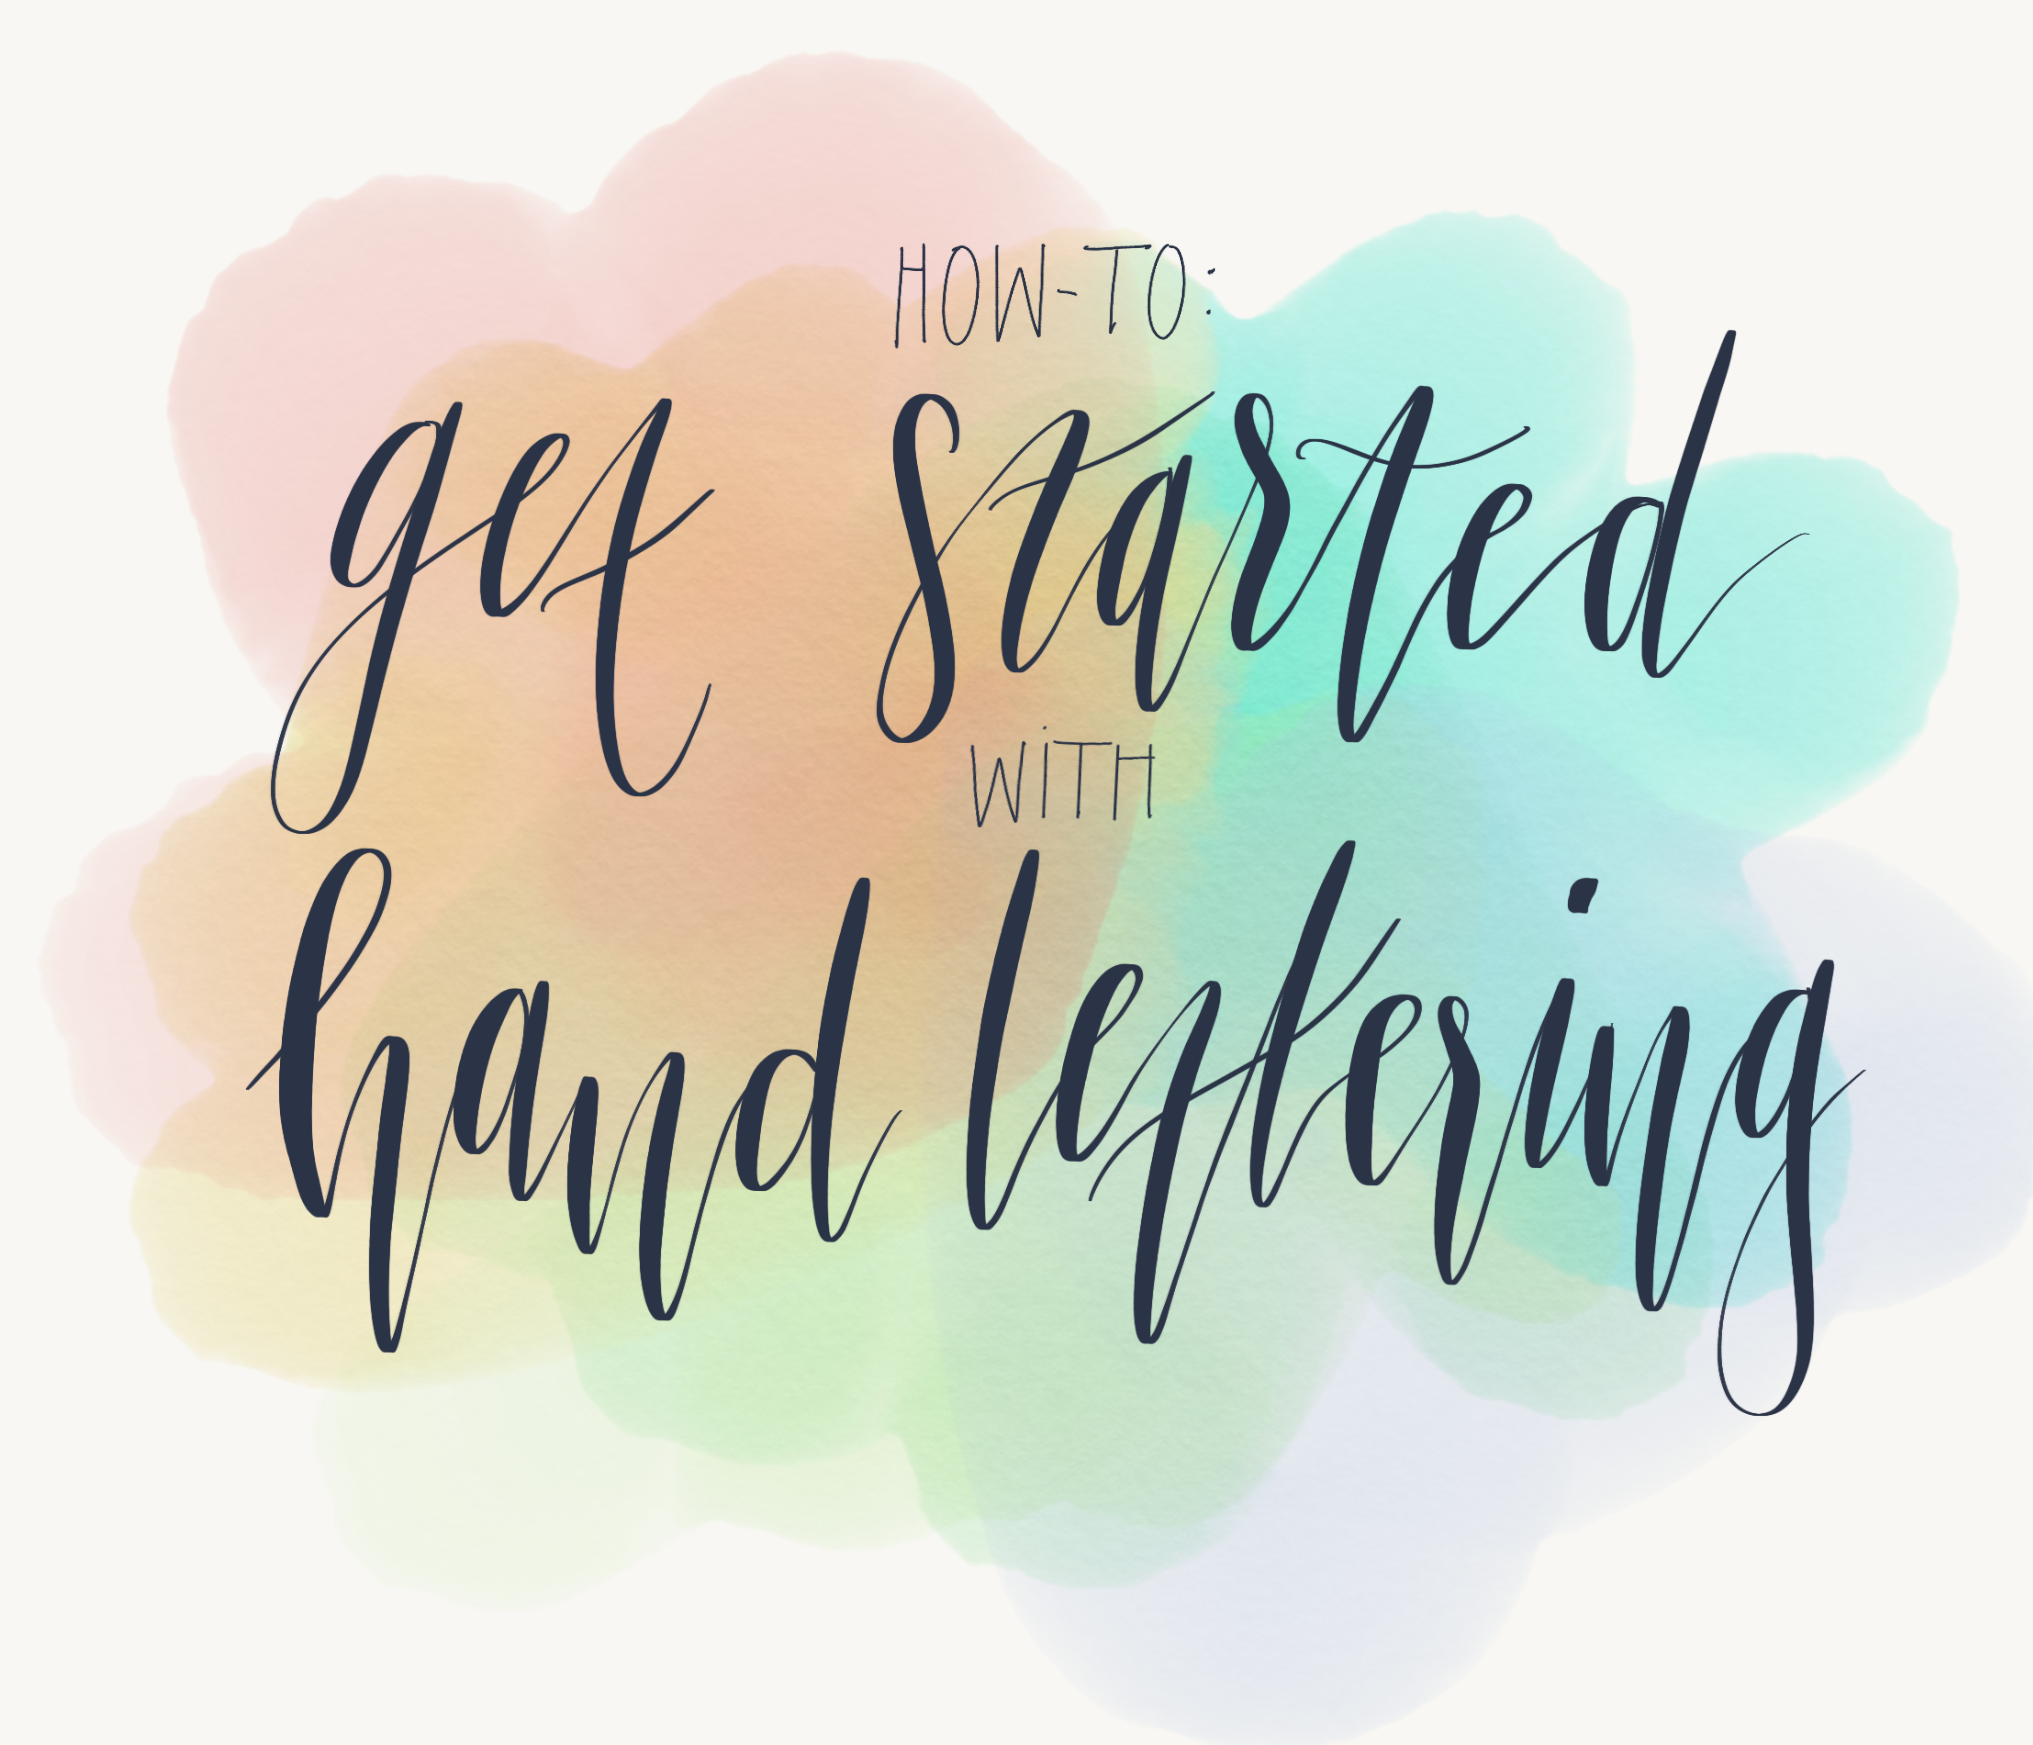 How to get started with hand-lettering - Cat Noone - Medium